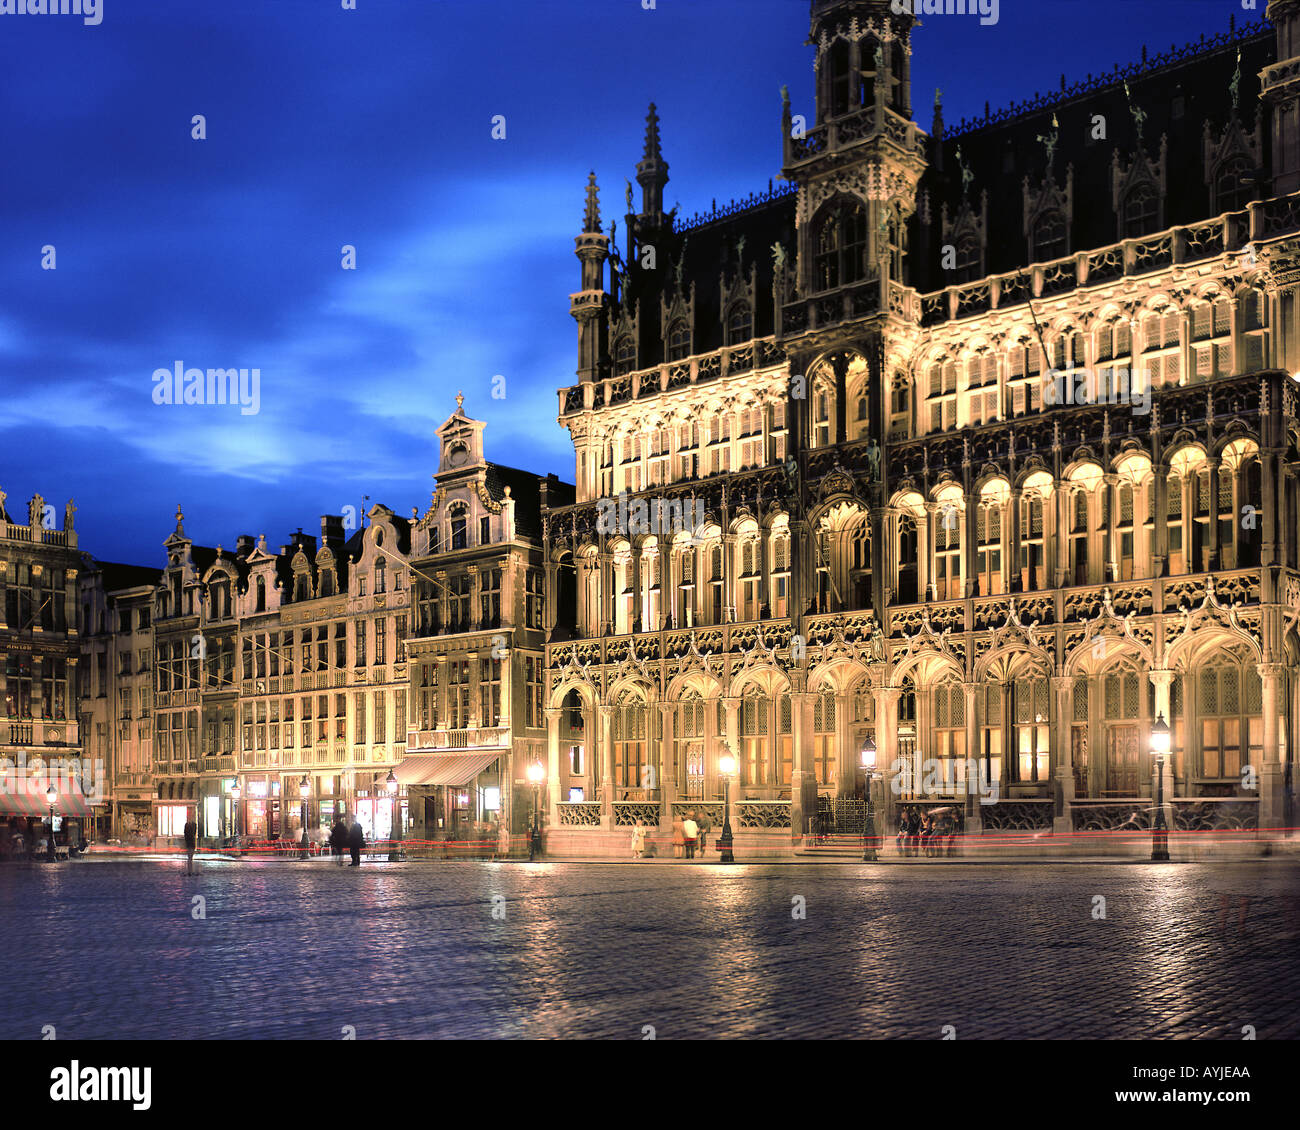 BE - BRUXELLES: Grand Place bei Nacht Stockbild